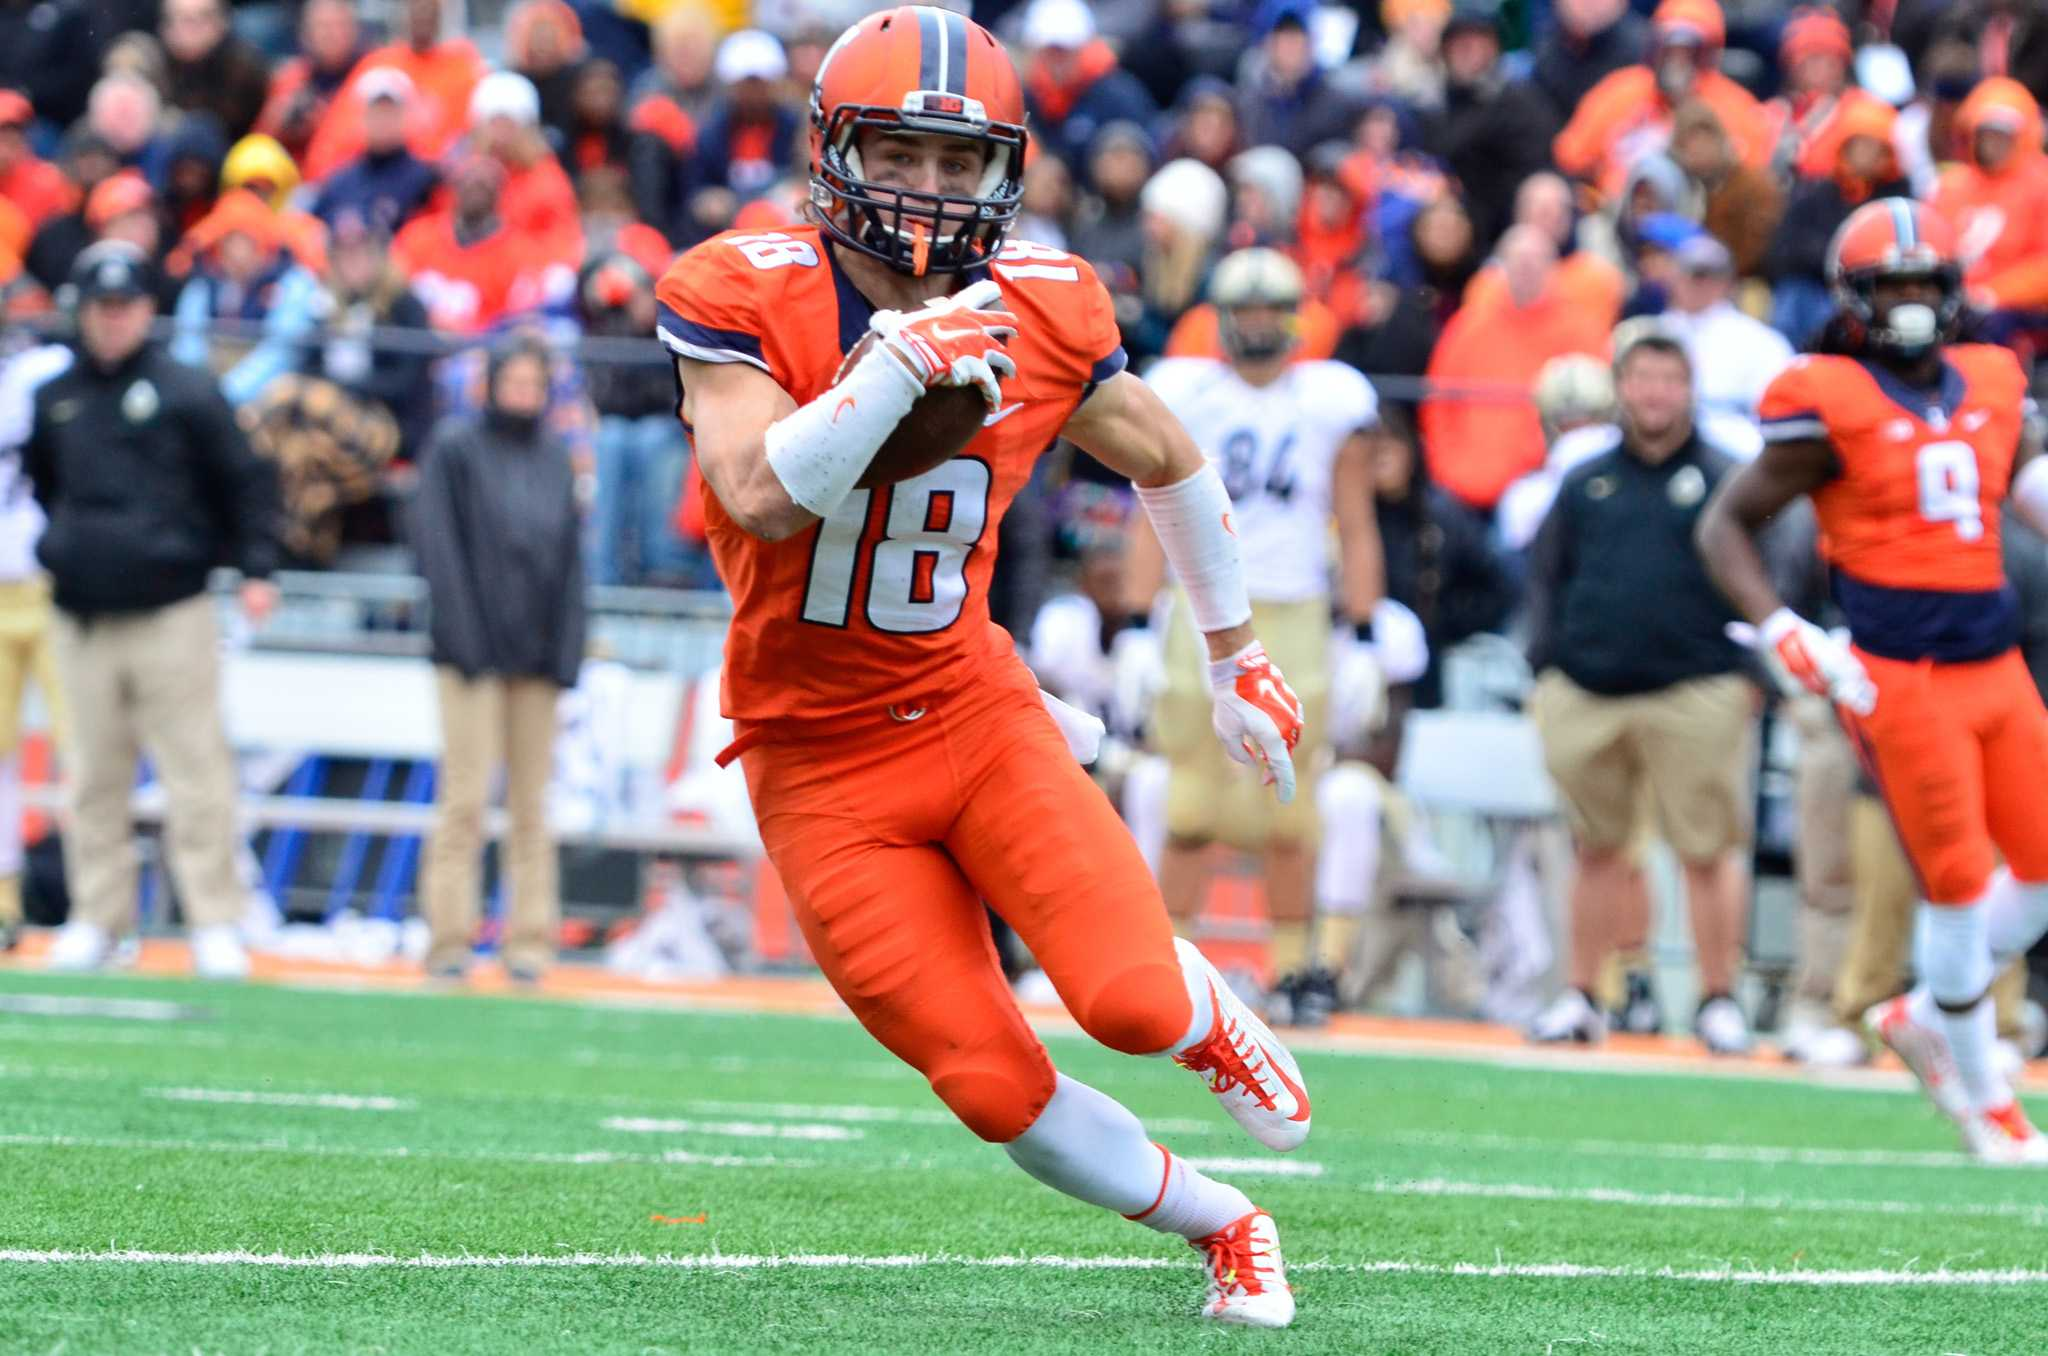 Illinois' Mike Dudek (18) runs the ball during the game against Purdue at Memorial Stadium on Saturday, Oct. 4, 2014. The Illini lost 38-27.